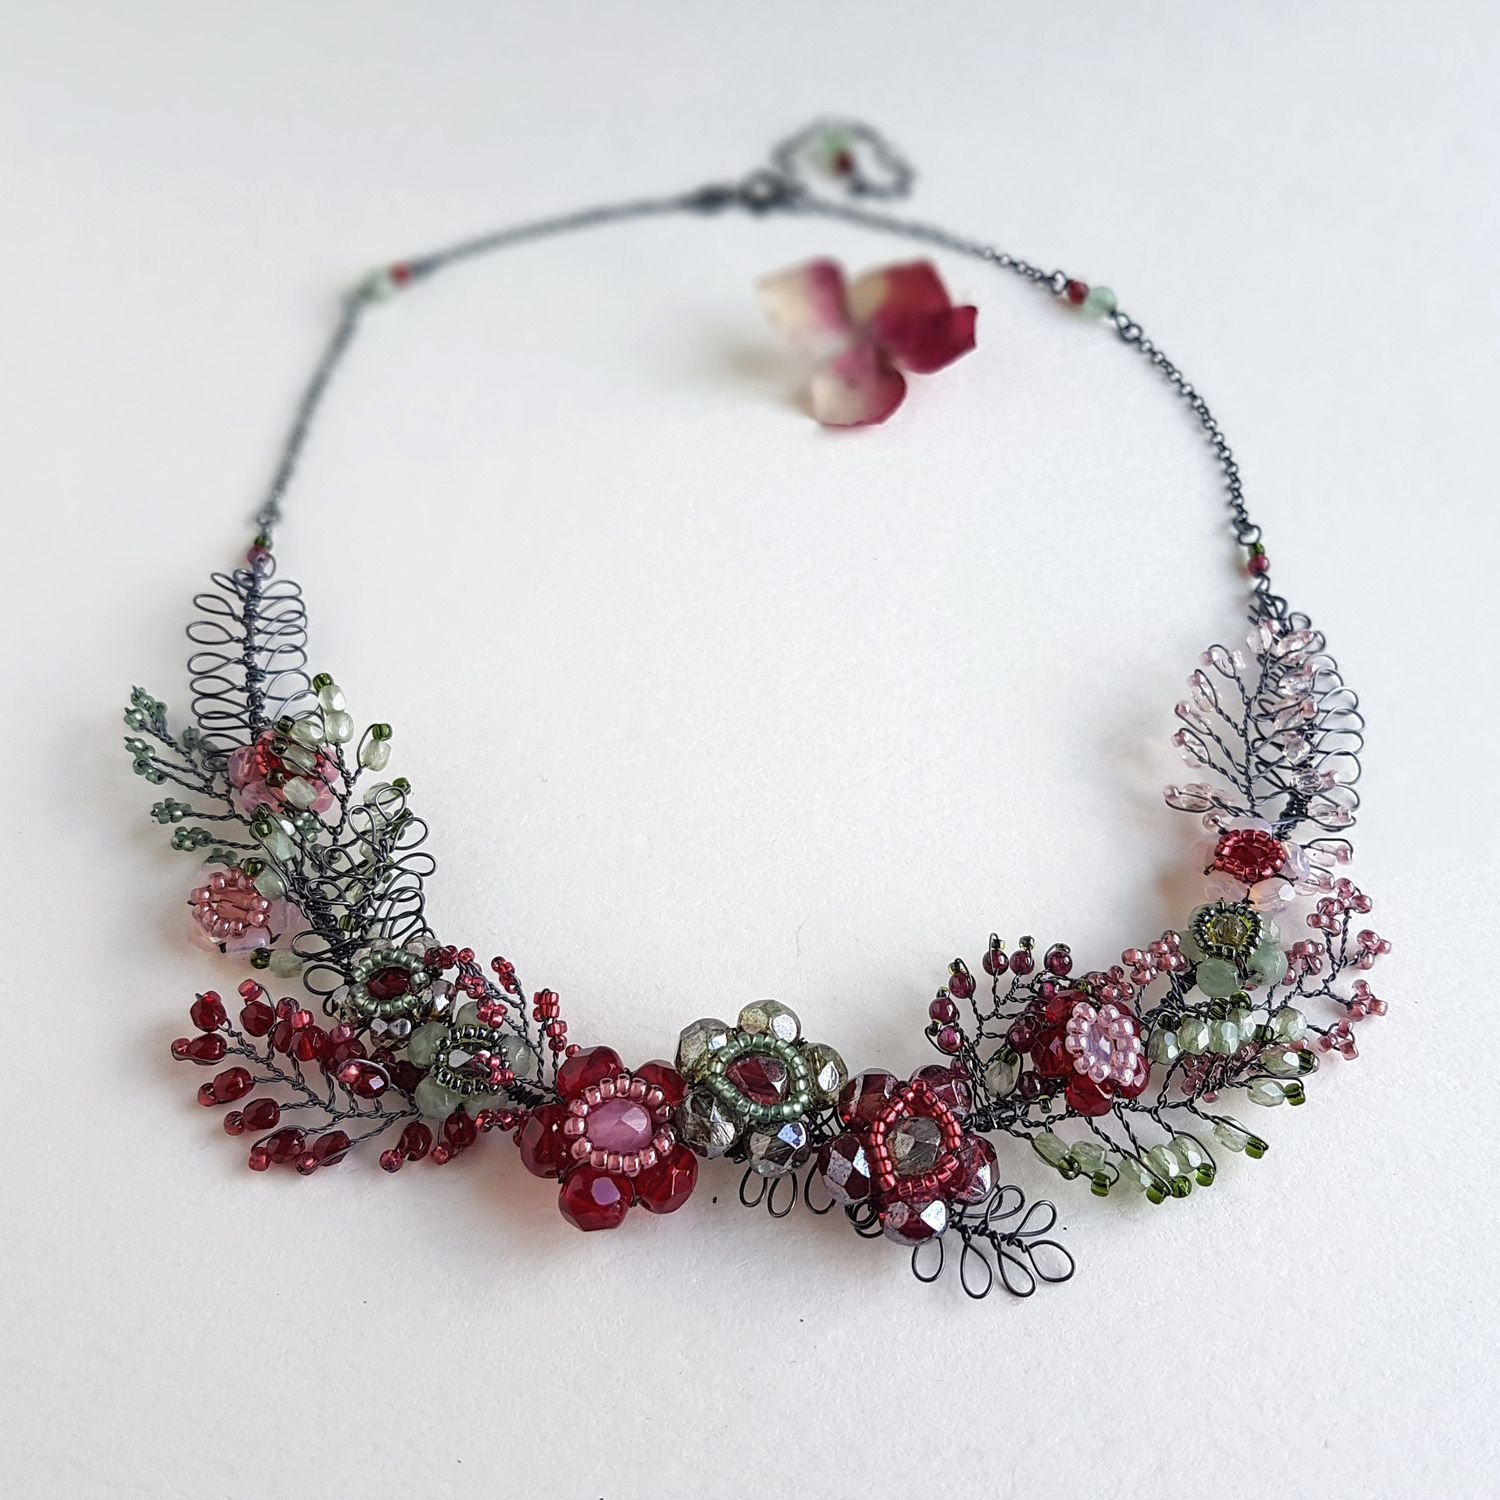 Statement necklace by Judith Brown Jewellery